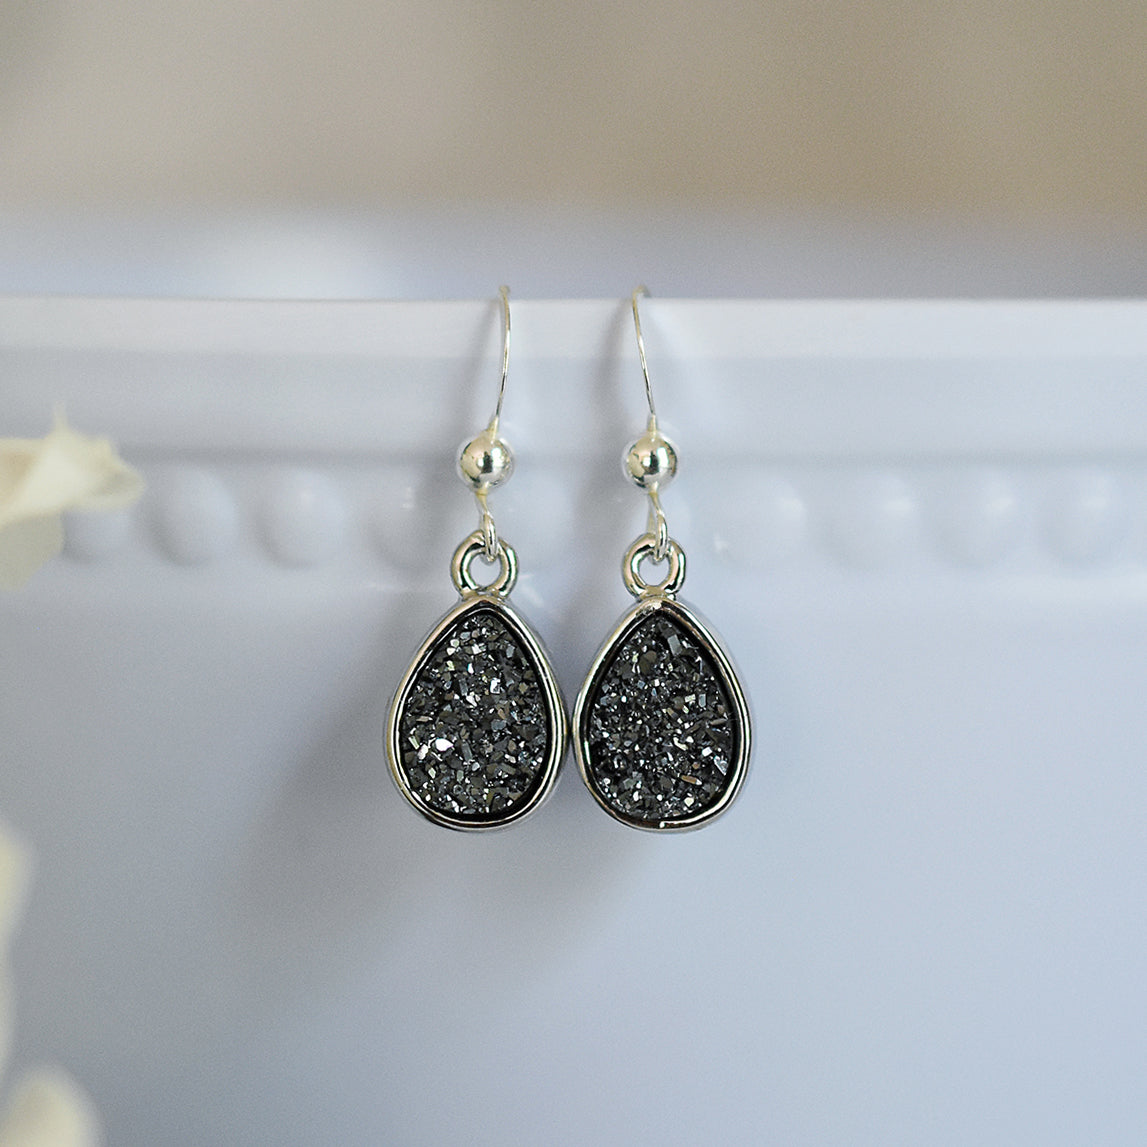 Black Druzy Teardrop Earrings